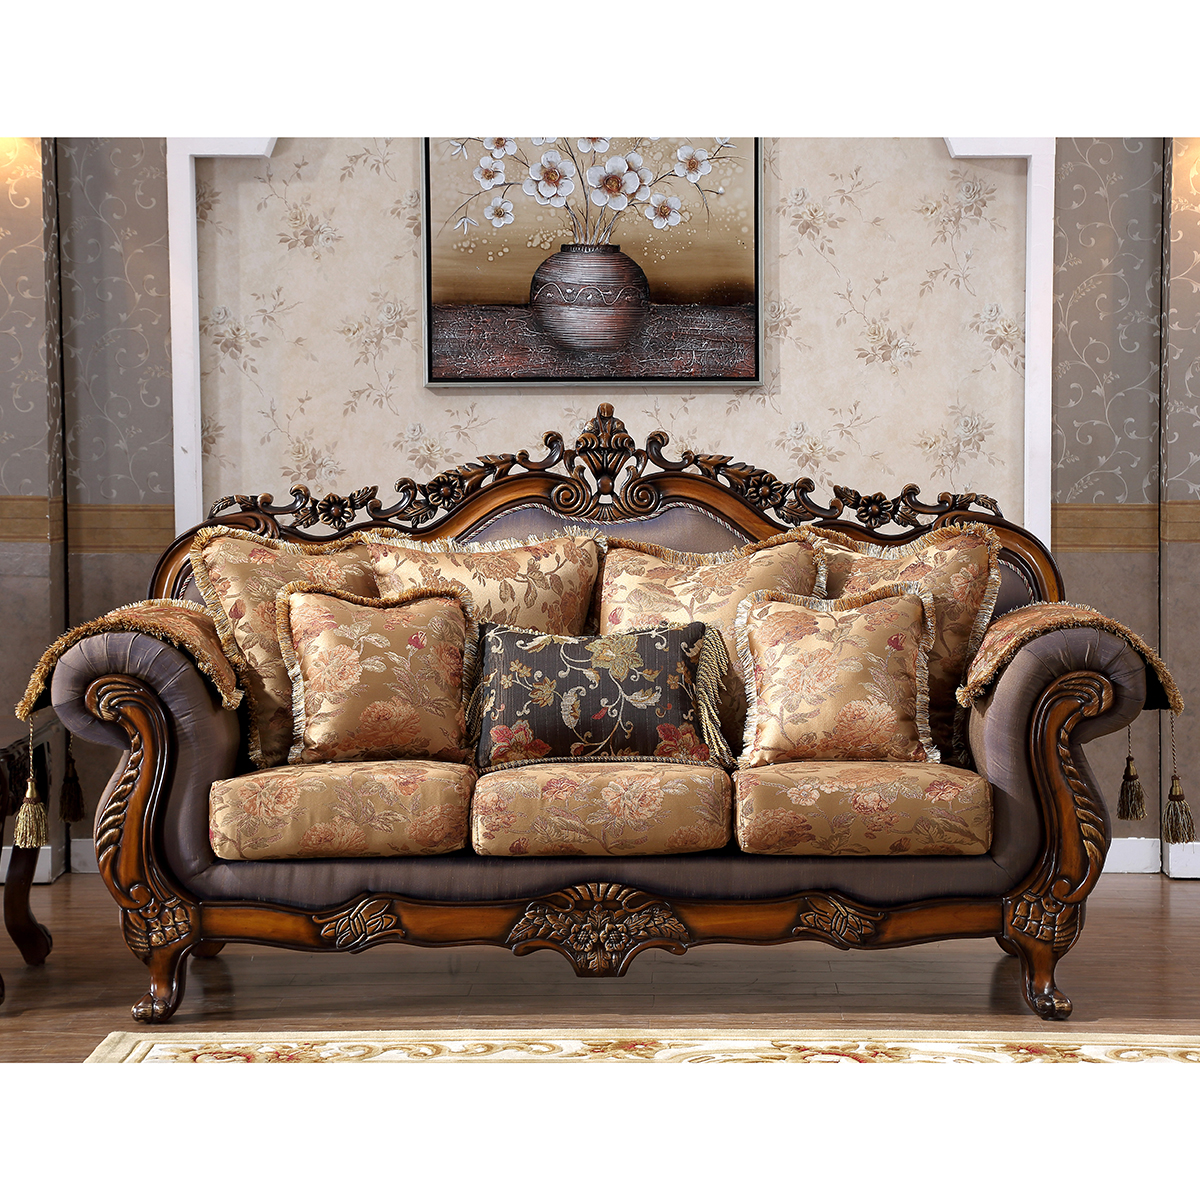 Tremendous Meridian Furniture Seville Sofa In Fabric On Cherry Frame W Ornate Carving Creativecarmelina Interior Chair Design Creativecarmelinacom